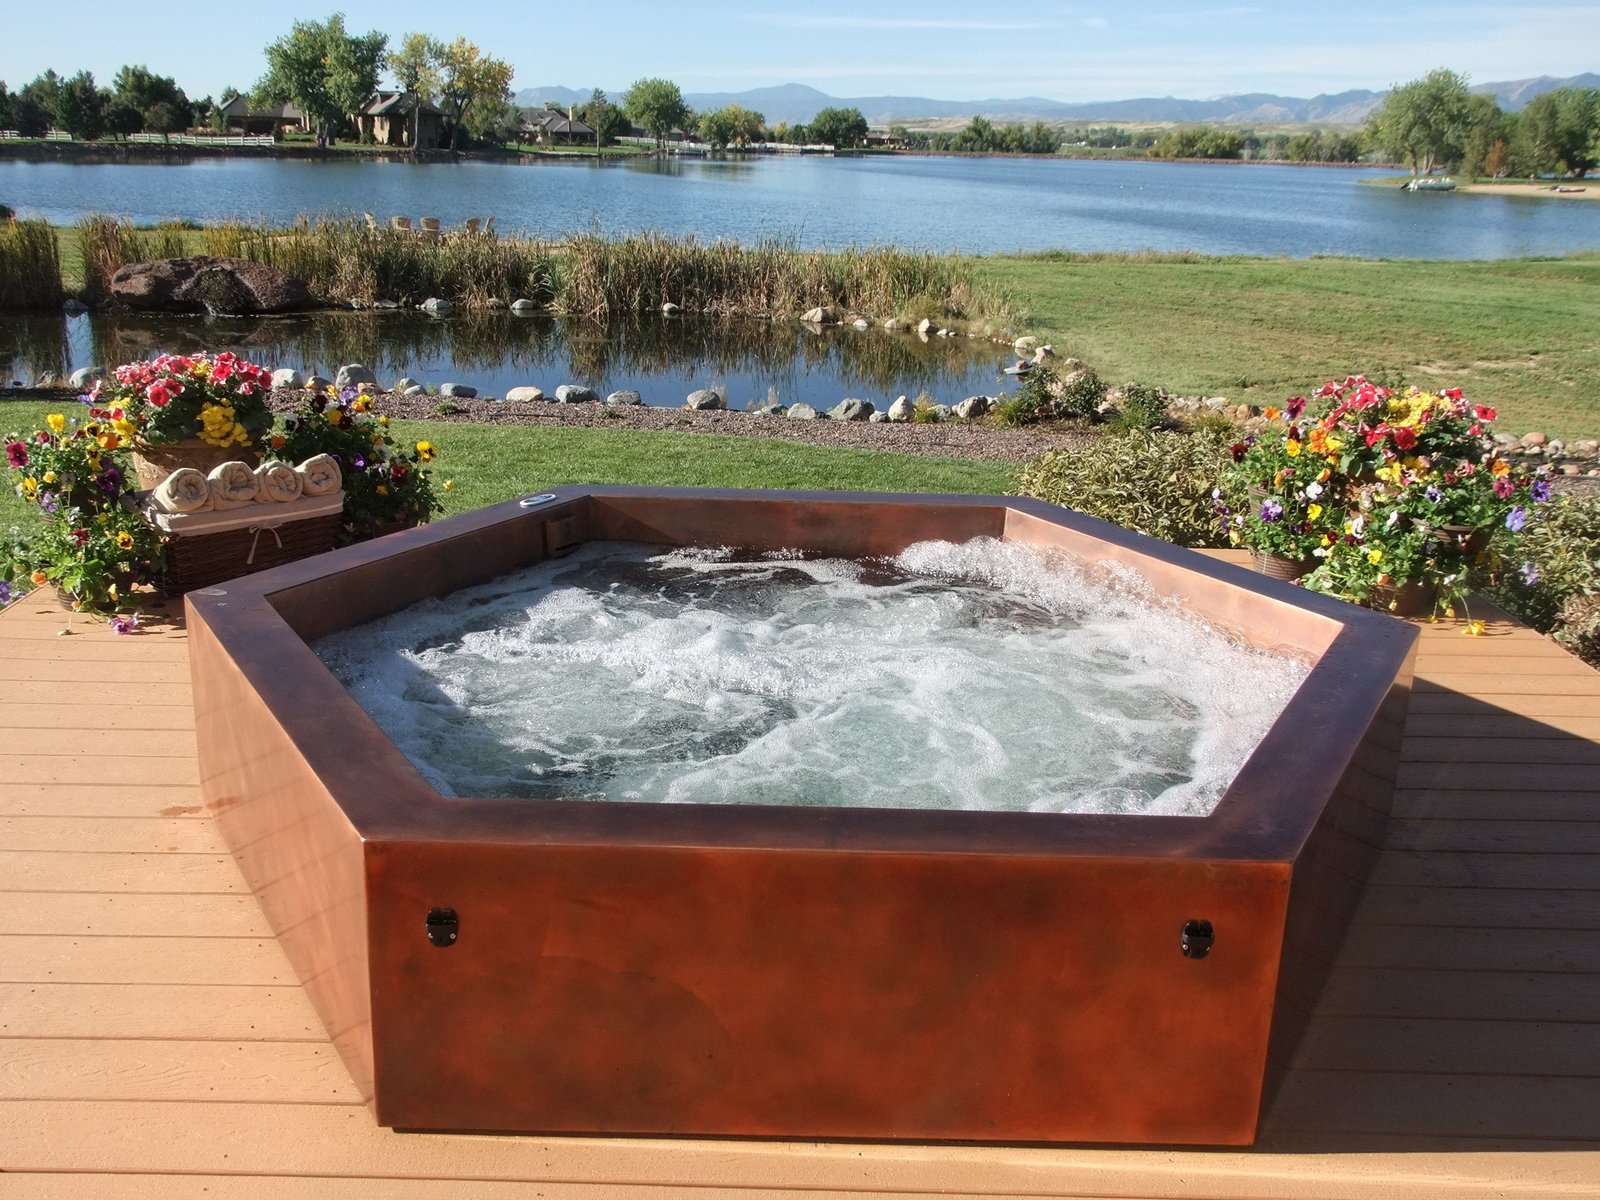 Copper Above Ground Hot Tub  Photo 7 of 11 in 10 Modern Hot Tubs